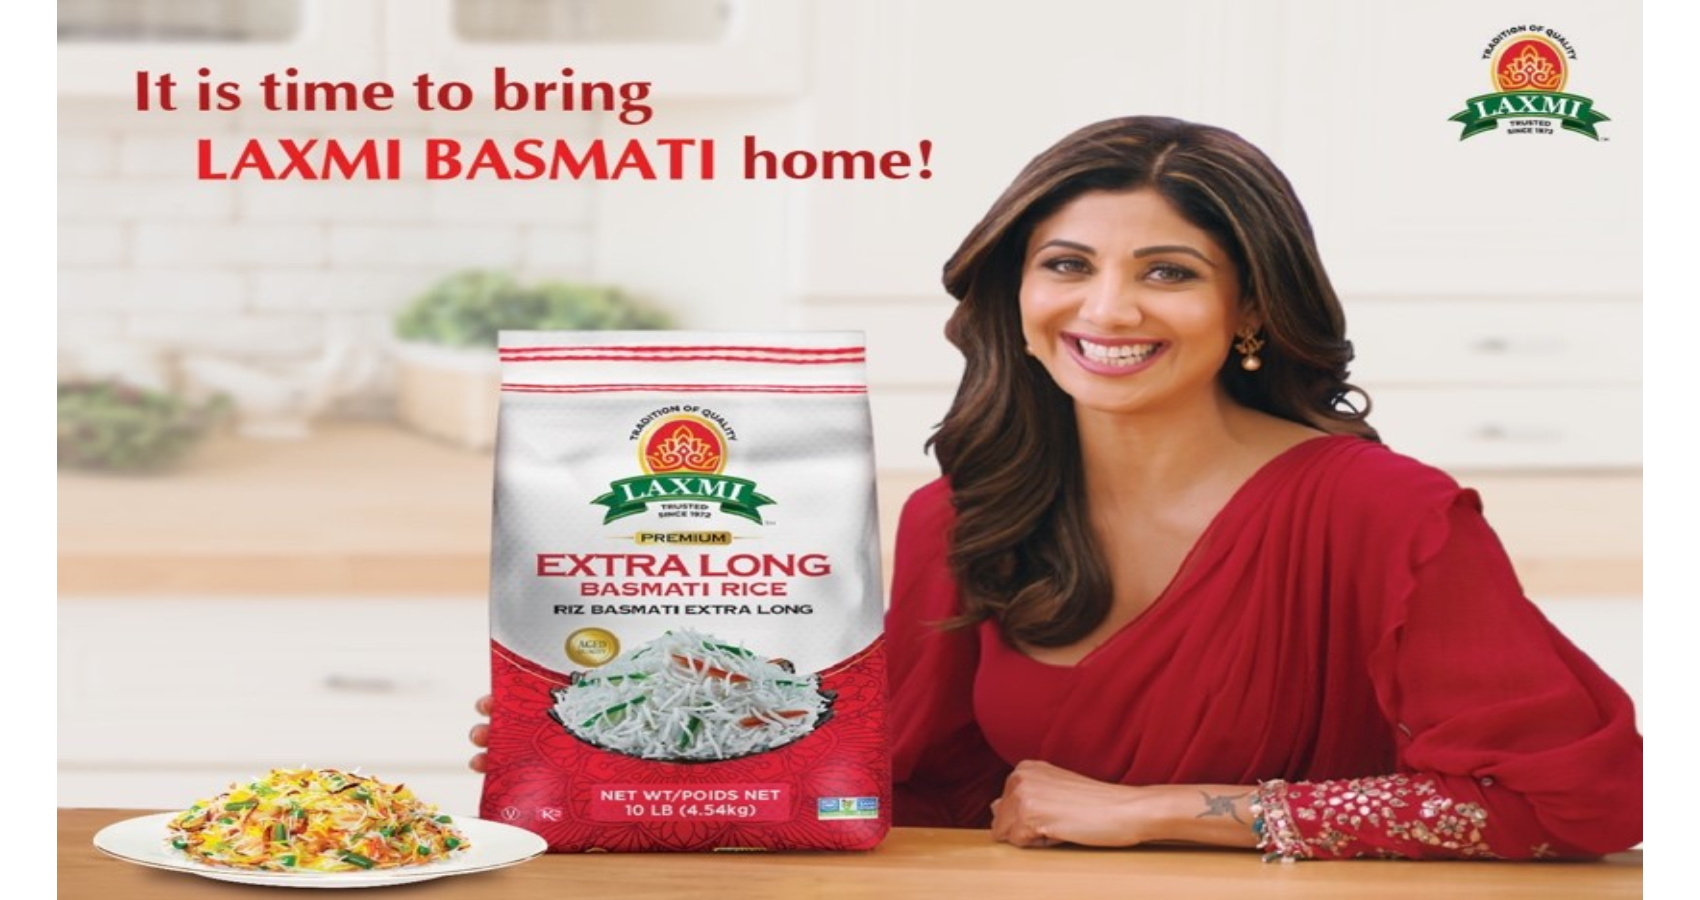 Bollywood Superstar And Fitness Icon Shilpa Shetty Kundra Is The New Face Of U.S. Based South Asian Food Brand, LAXMI!